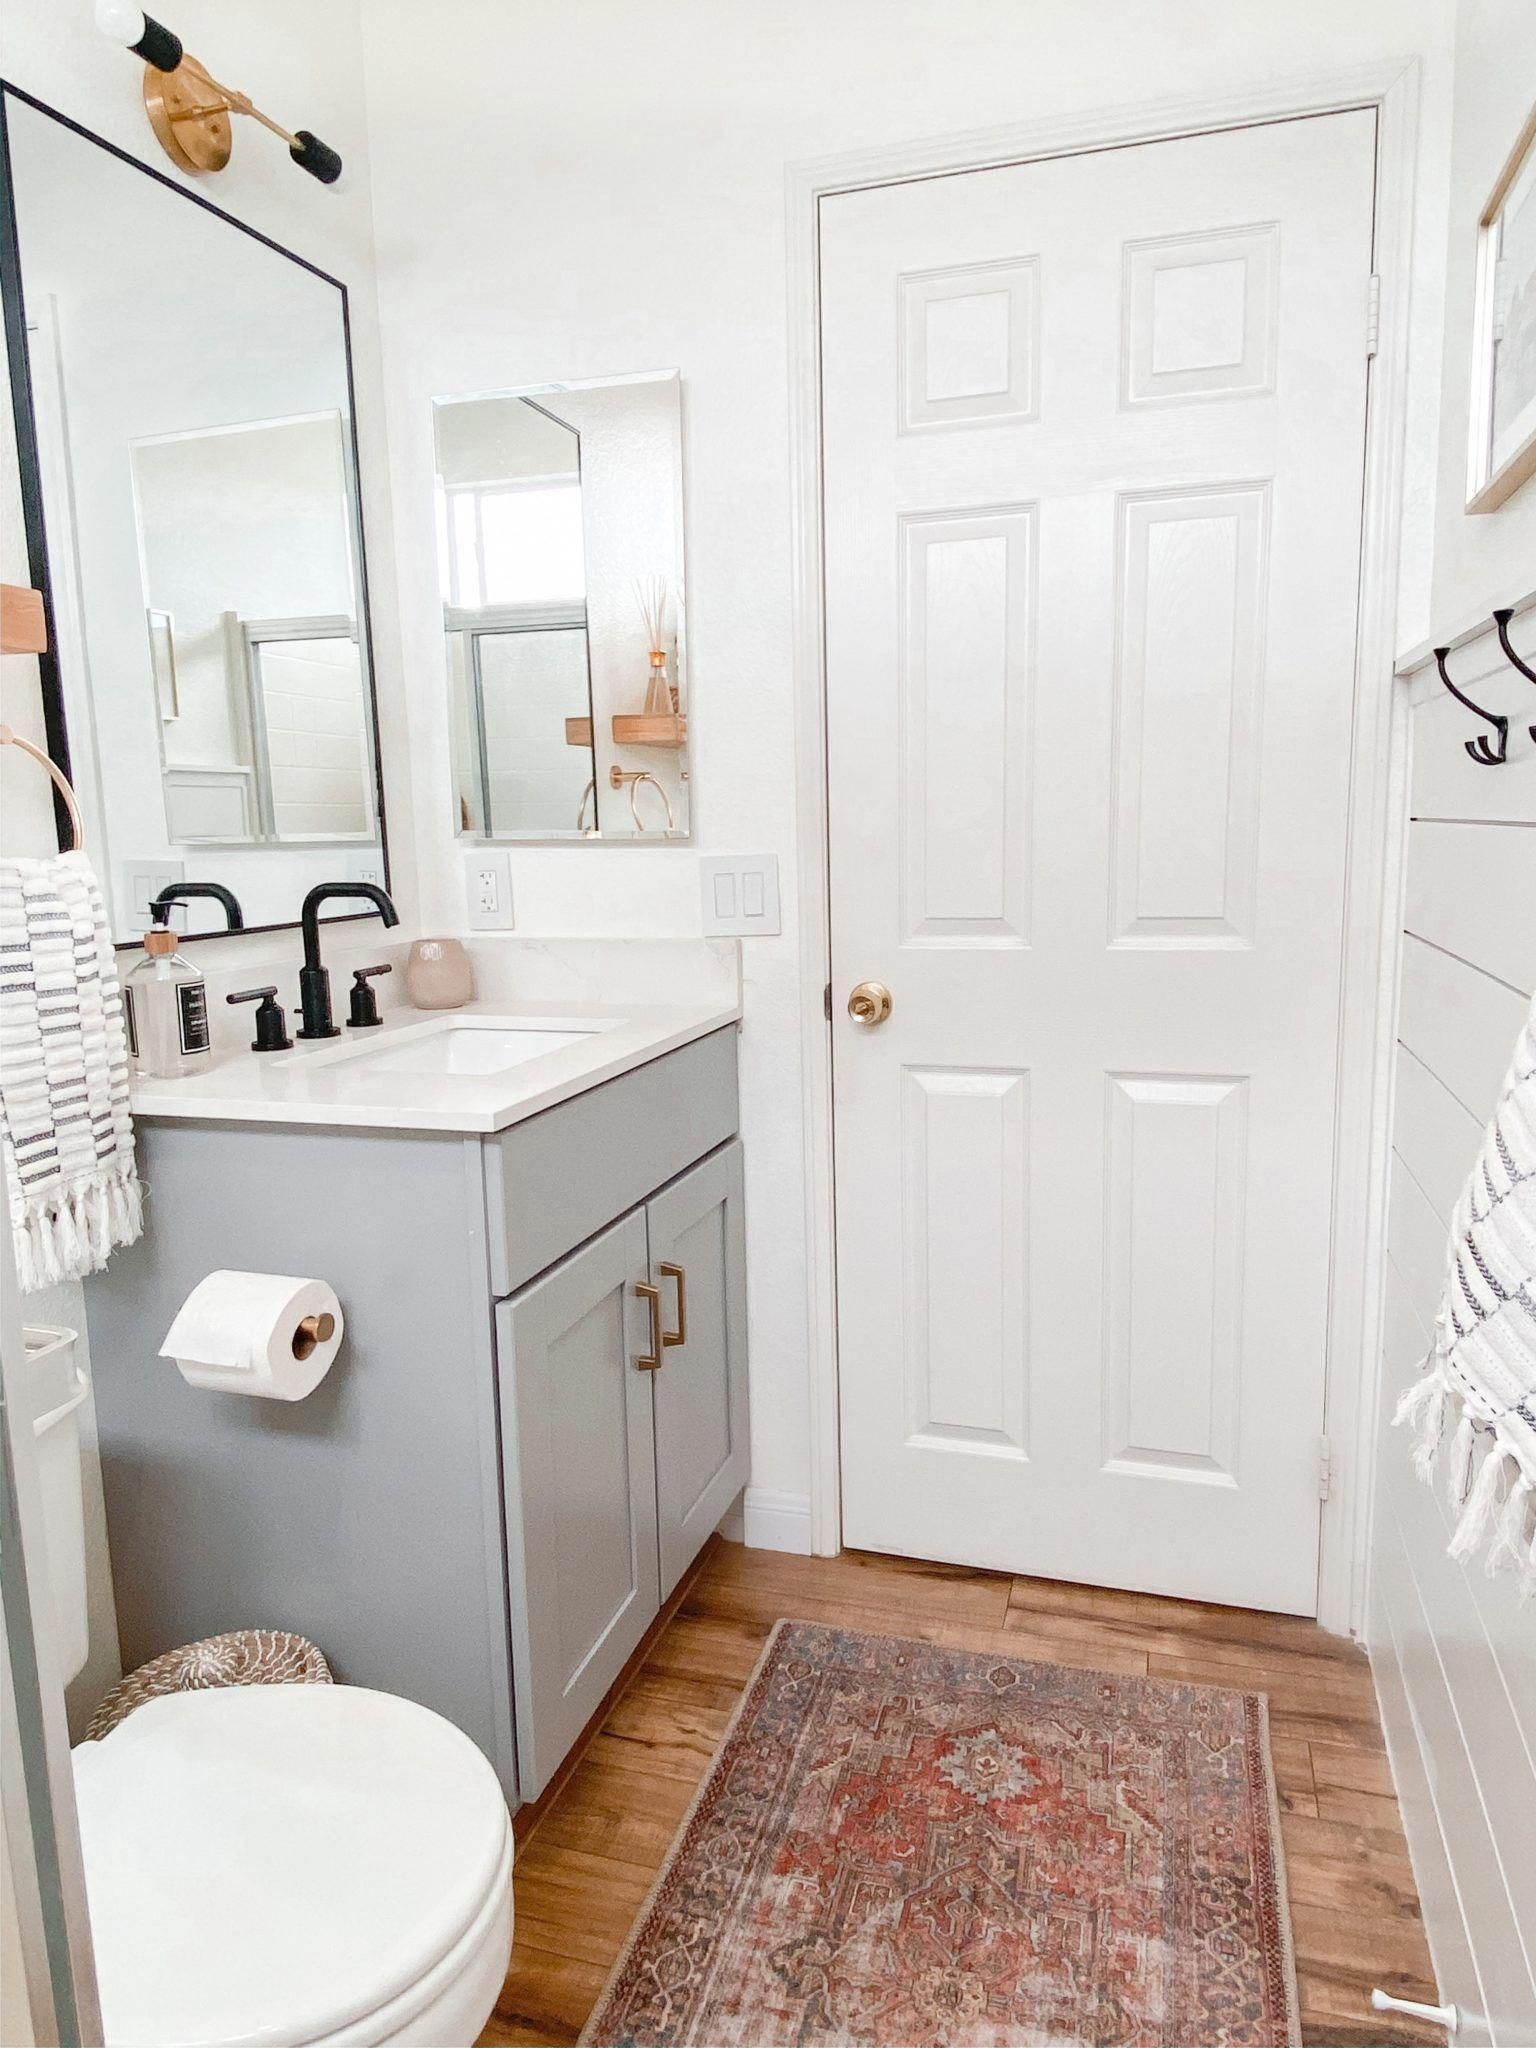 Small Bathroom Remodel Ideas: Befor and After   Domestic ... on Small Bathroom Ideas 2020 id=30407